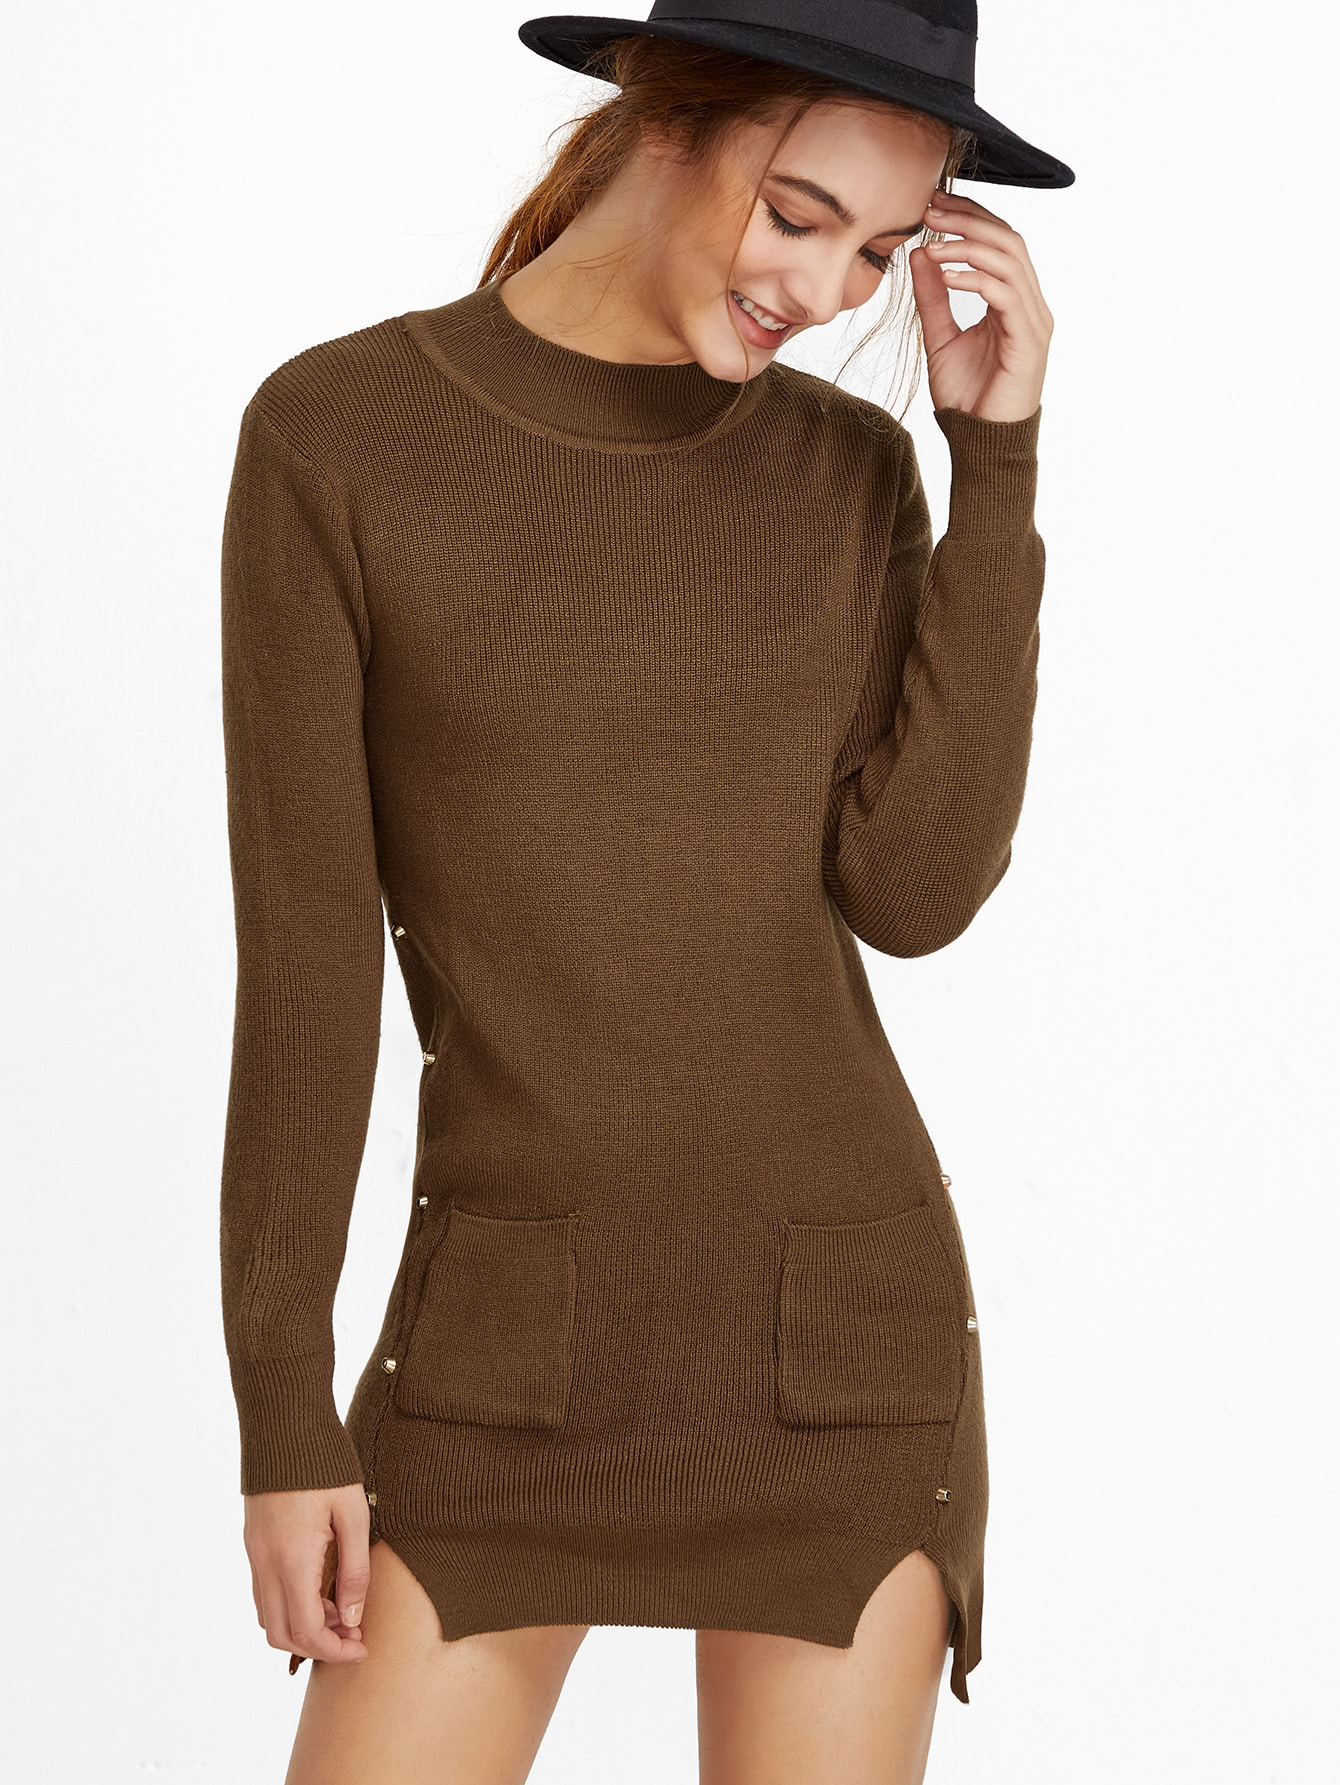 Khaki Slit Side High Low Studded Sweater sweater161102005